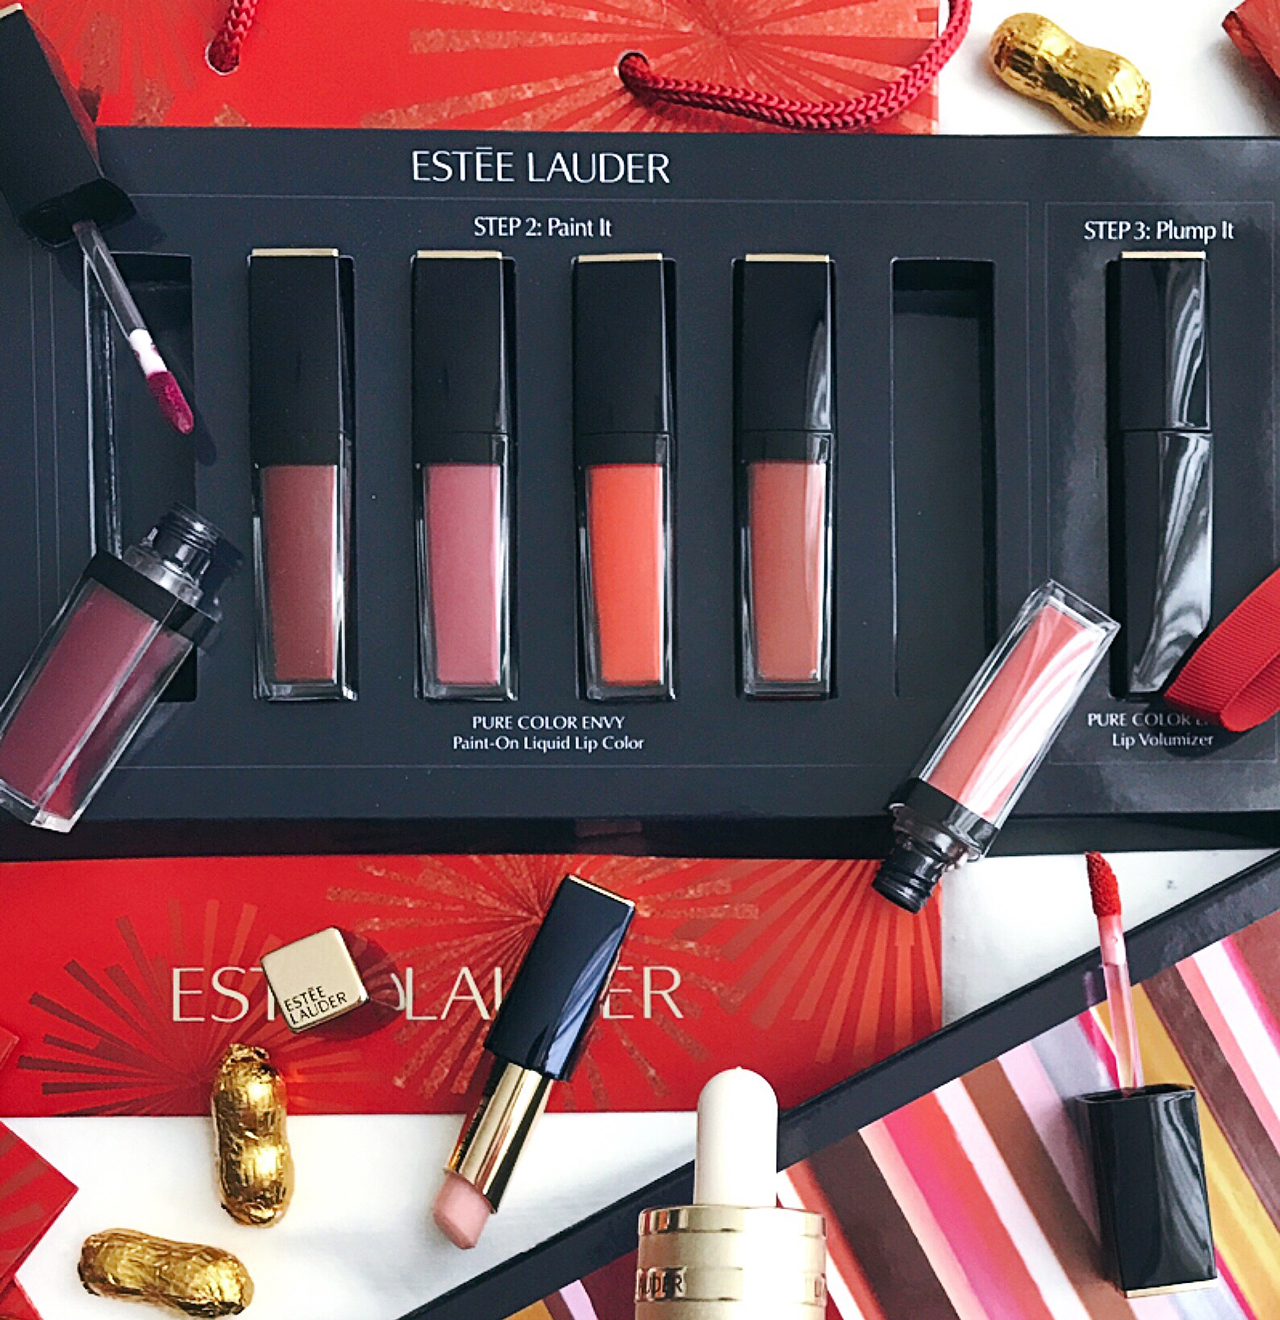 Estee Lauder Pure Color Envy Paint-On Liquid Lip Color